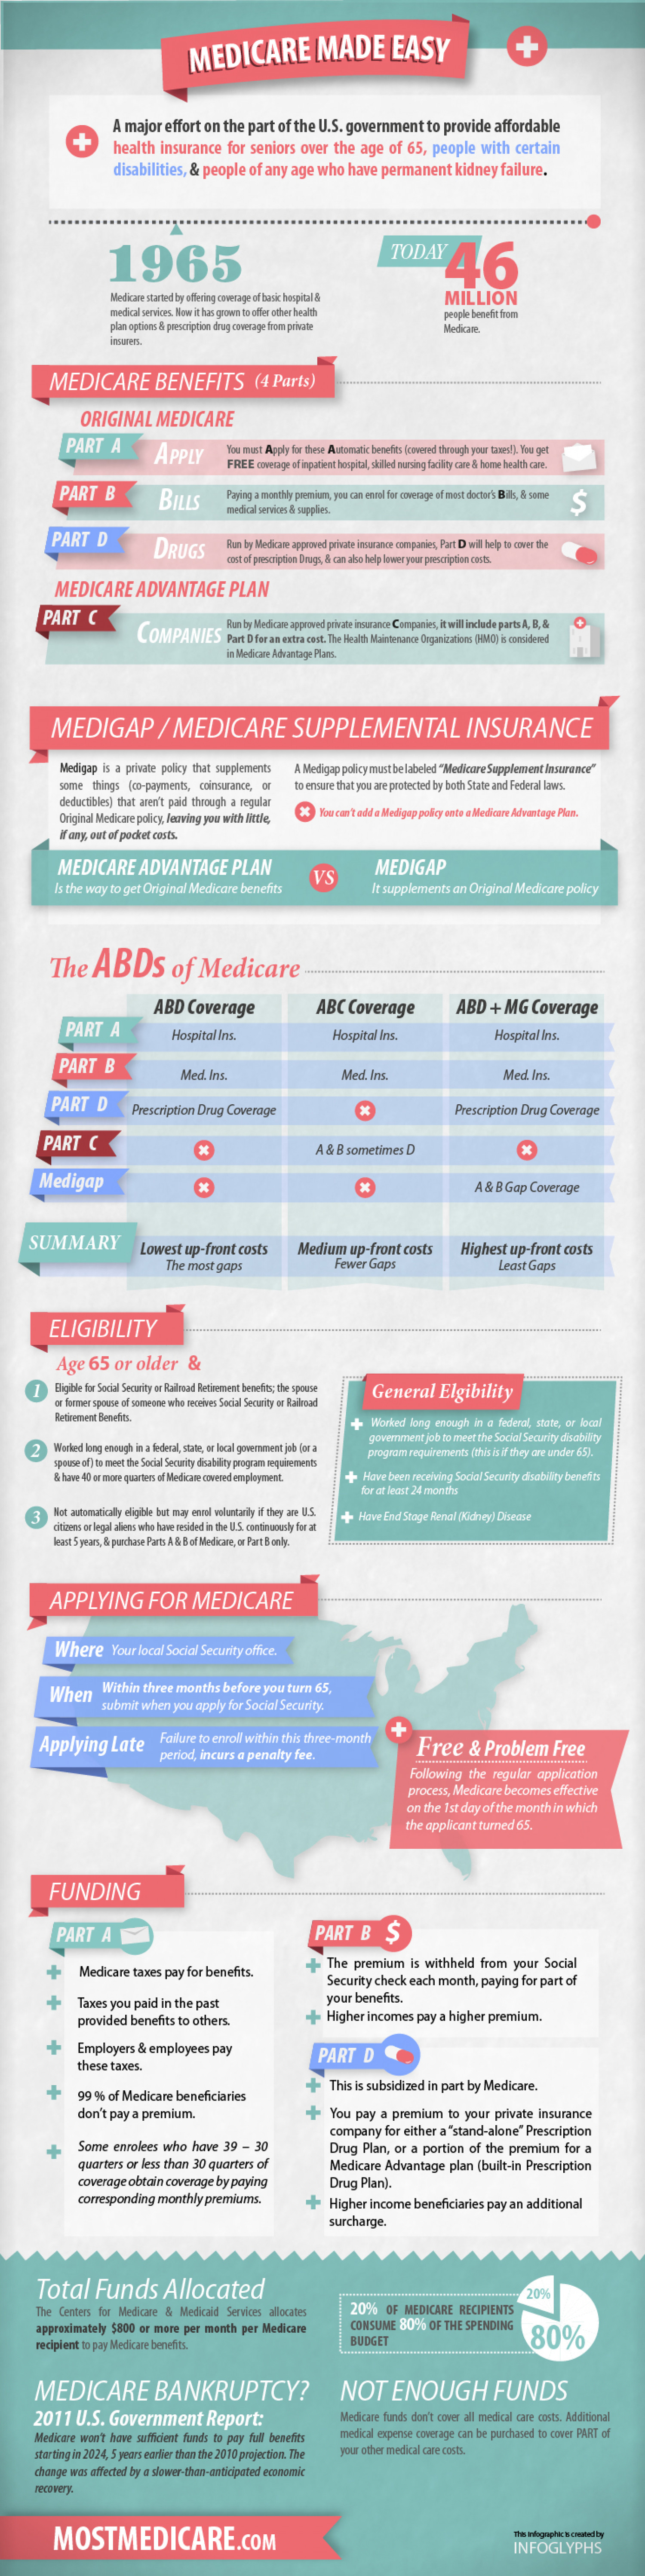 Medicare Made Easy Infographic